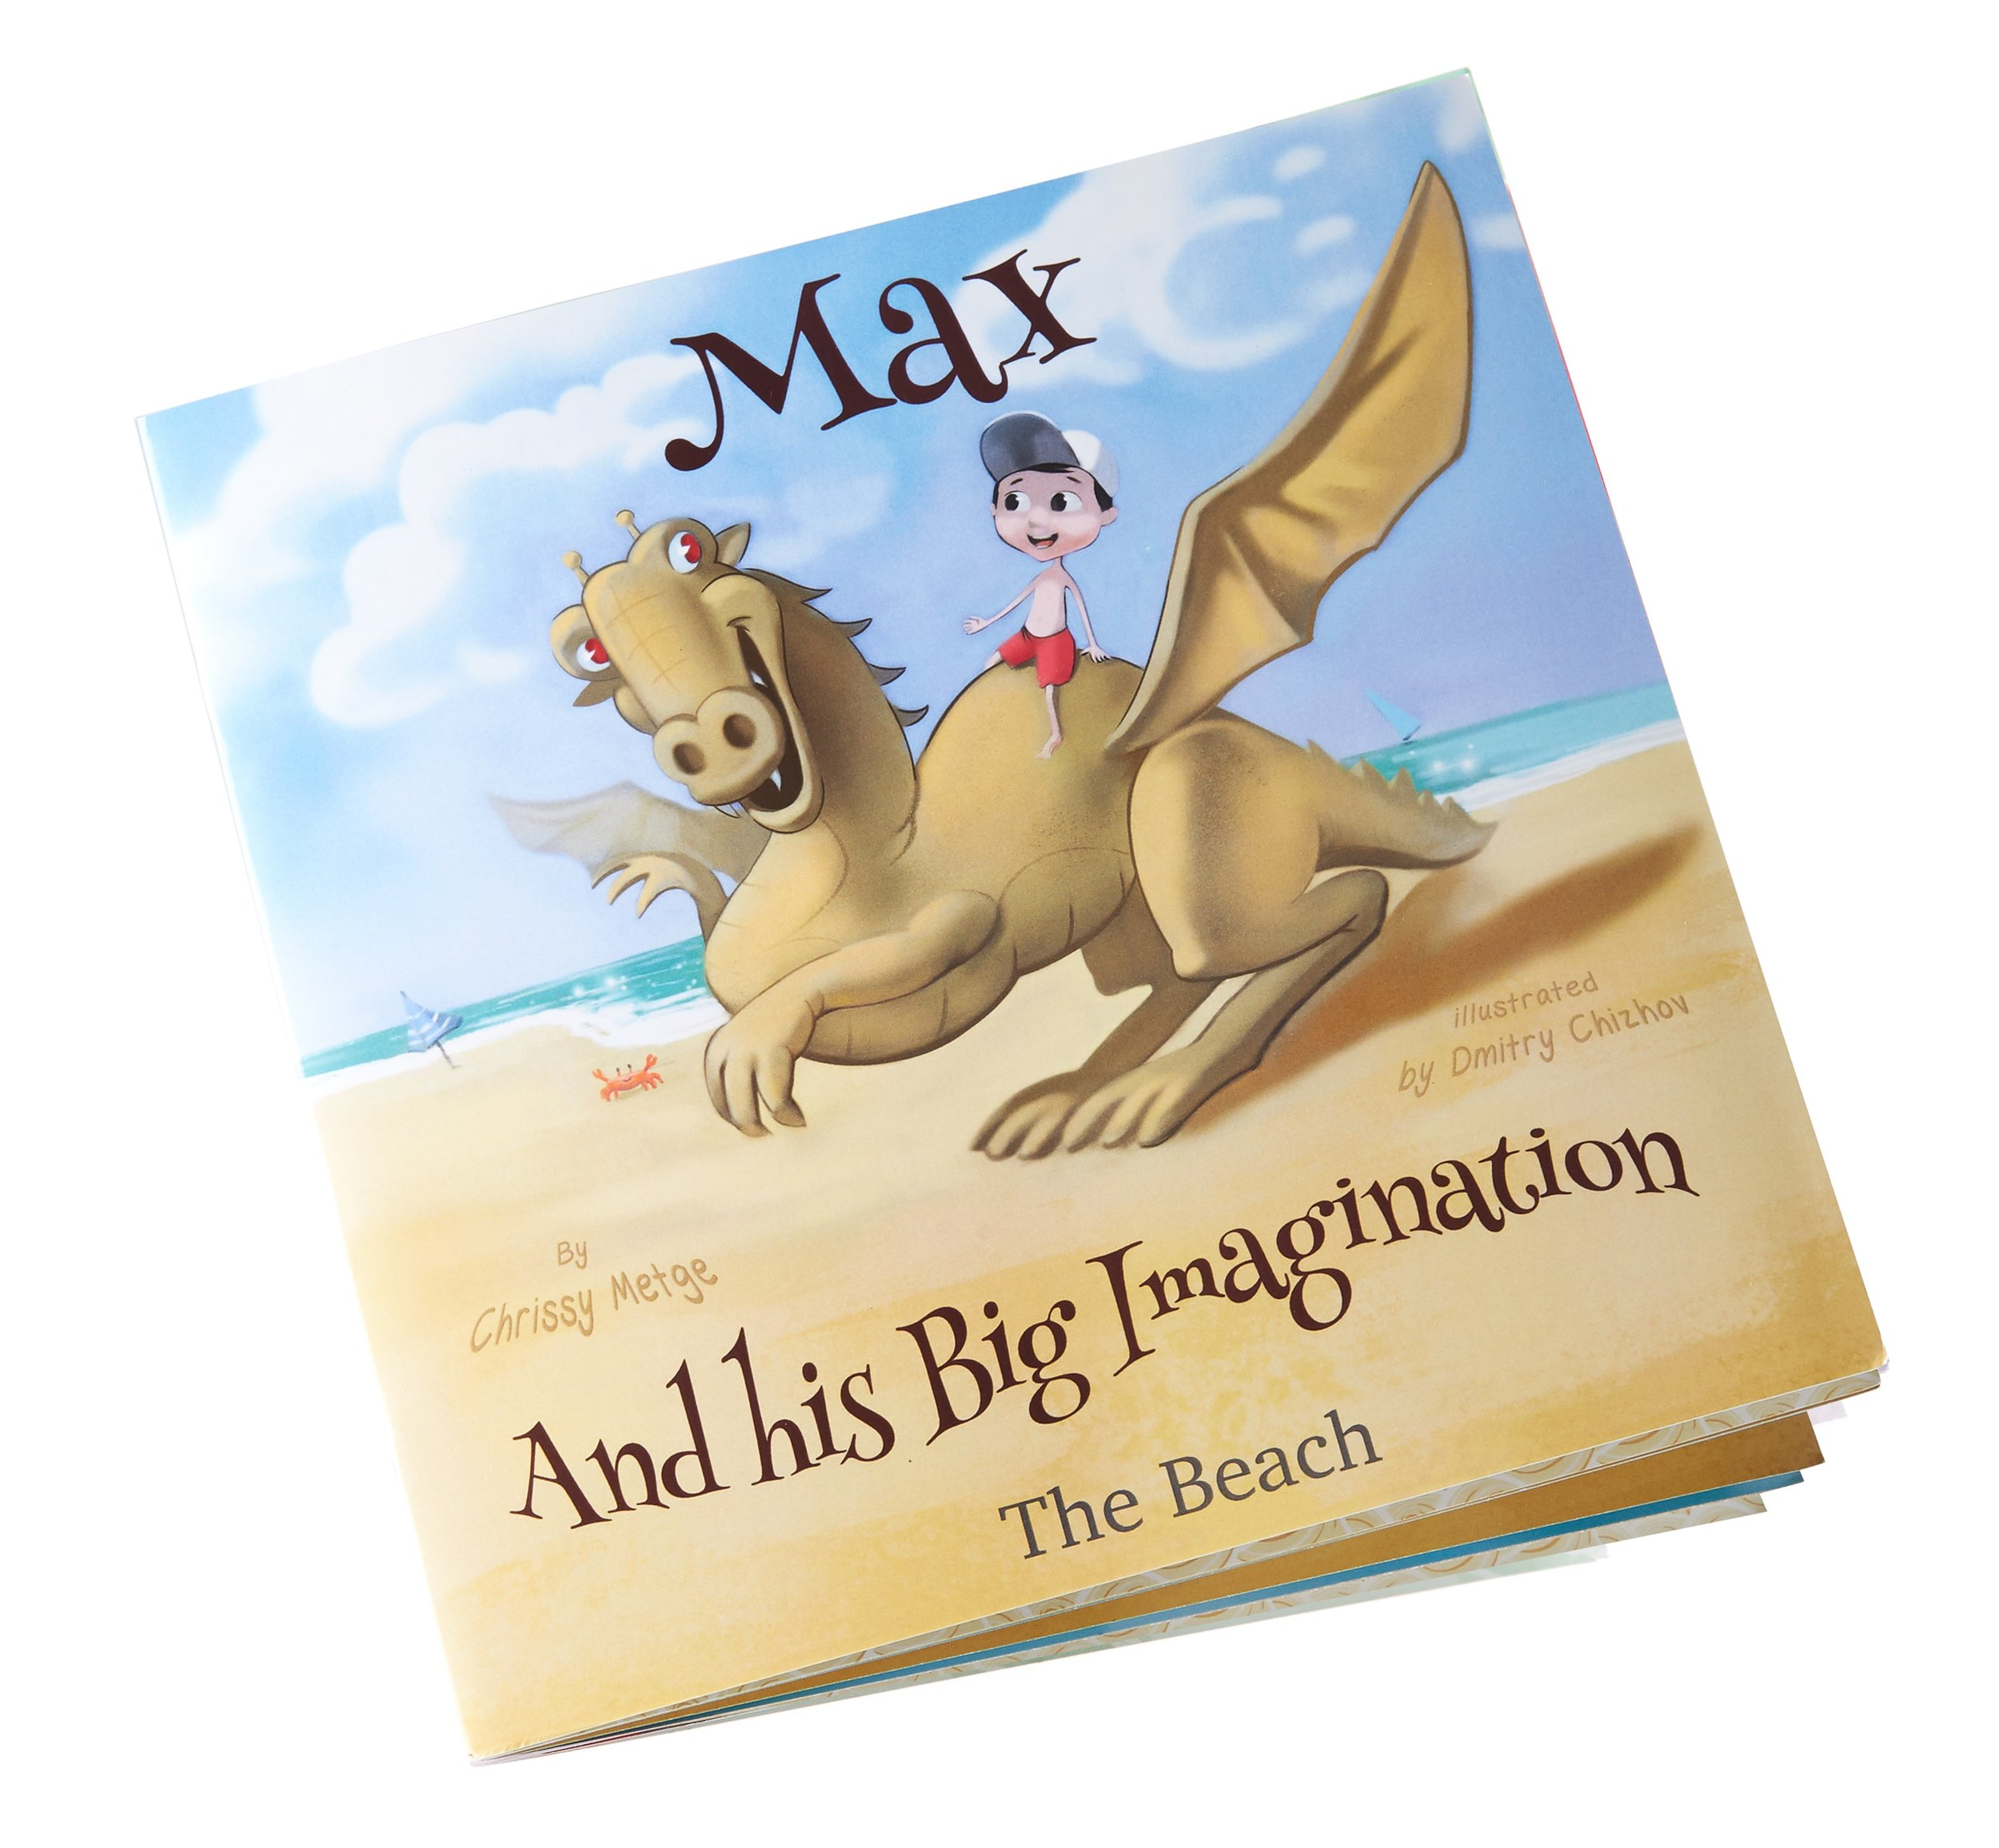 The Beach - Max and his mother build a great sand dragon today at the beach. Max imagines it comes to life and he travels over the sea meeting dolphins and whales.